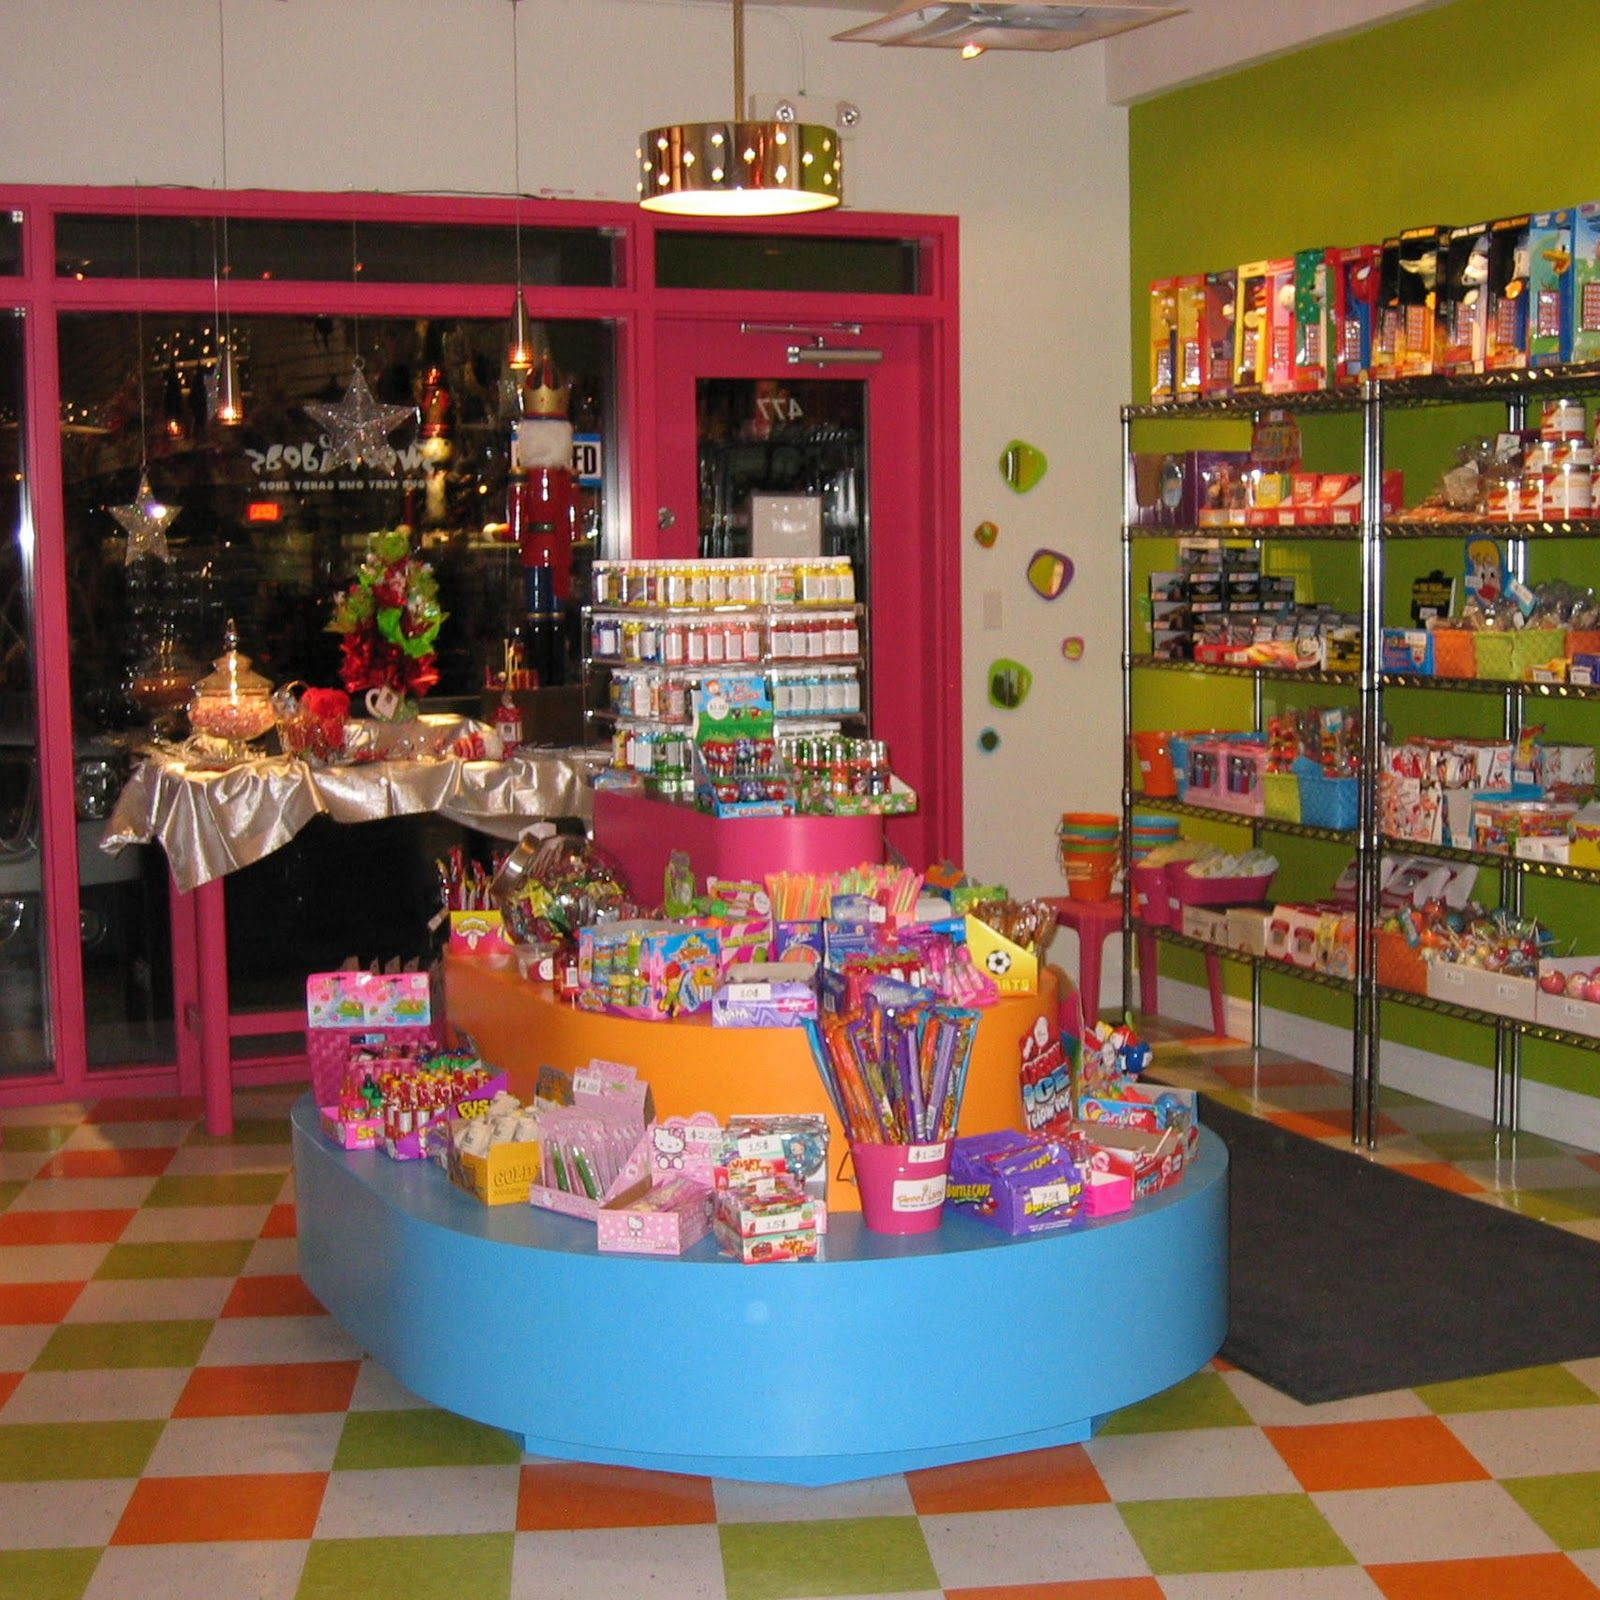 Candy Bar Interior Design Kitchen: ... Sorts Of Things When I Was